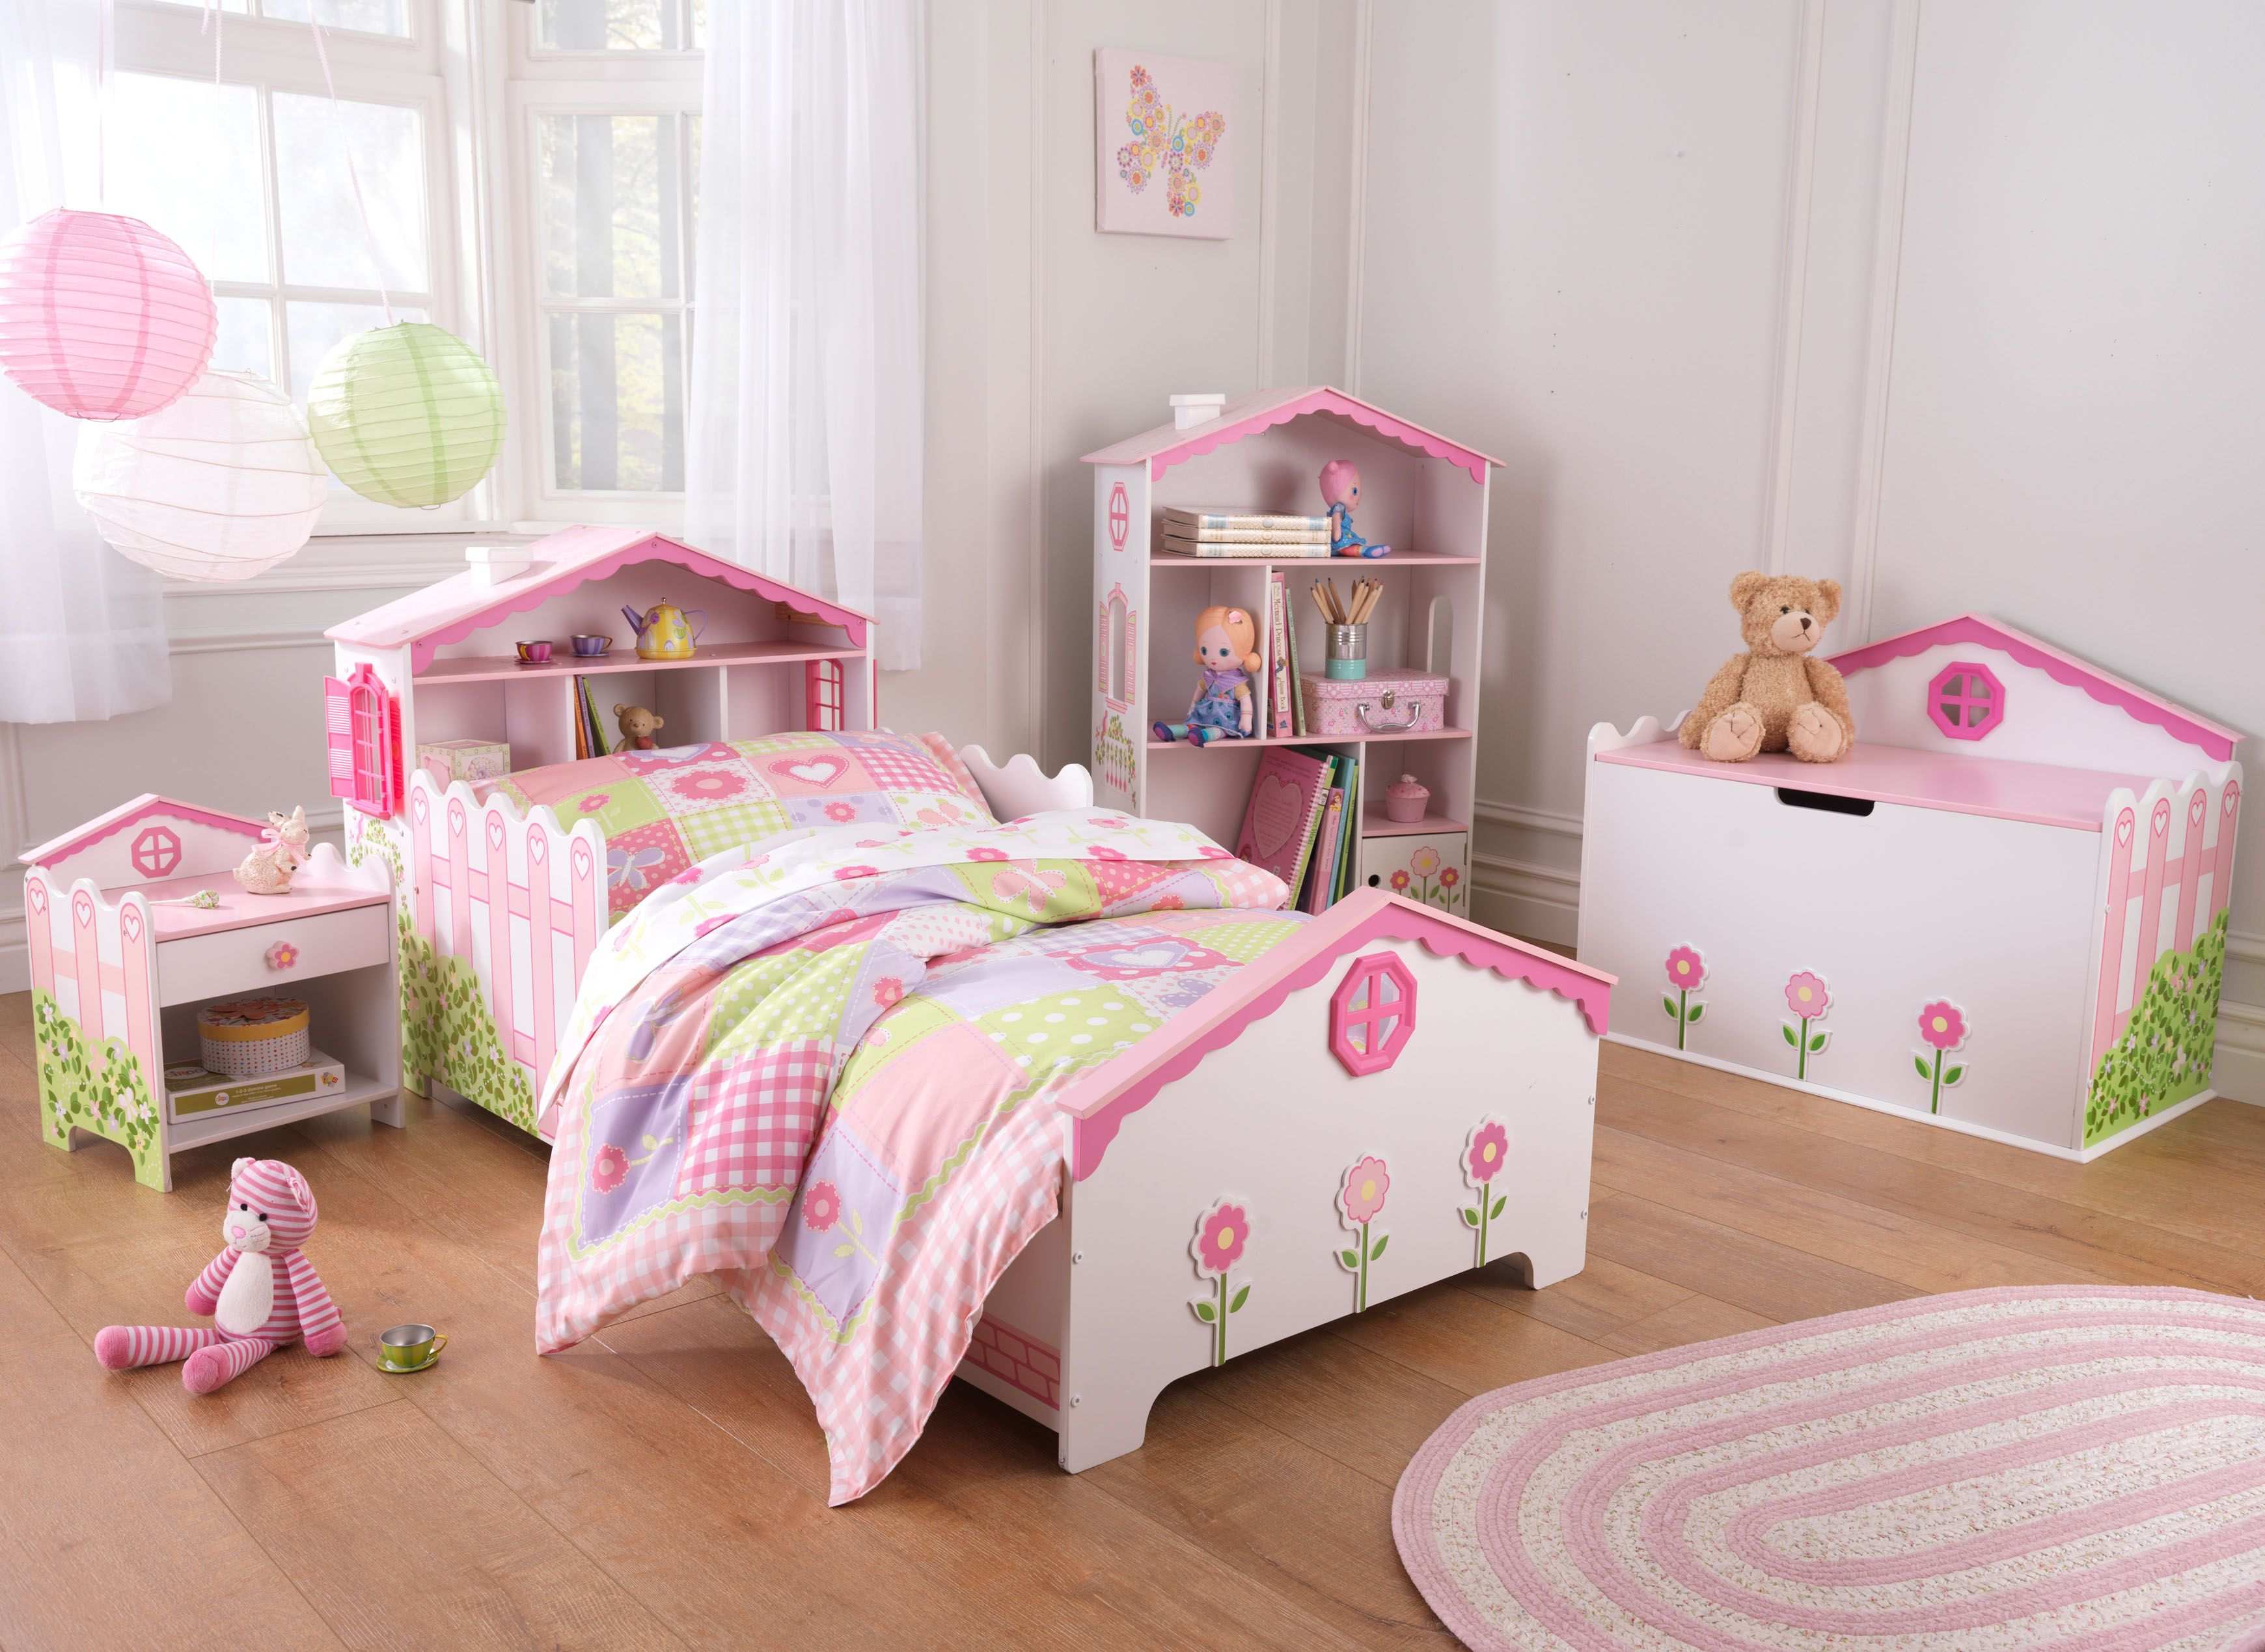 Dollhouse Toddler Bed Room Set